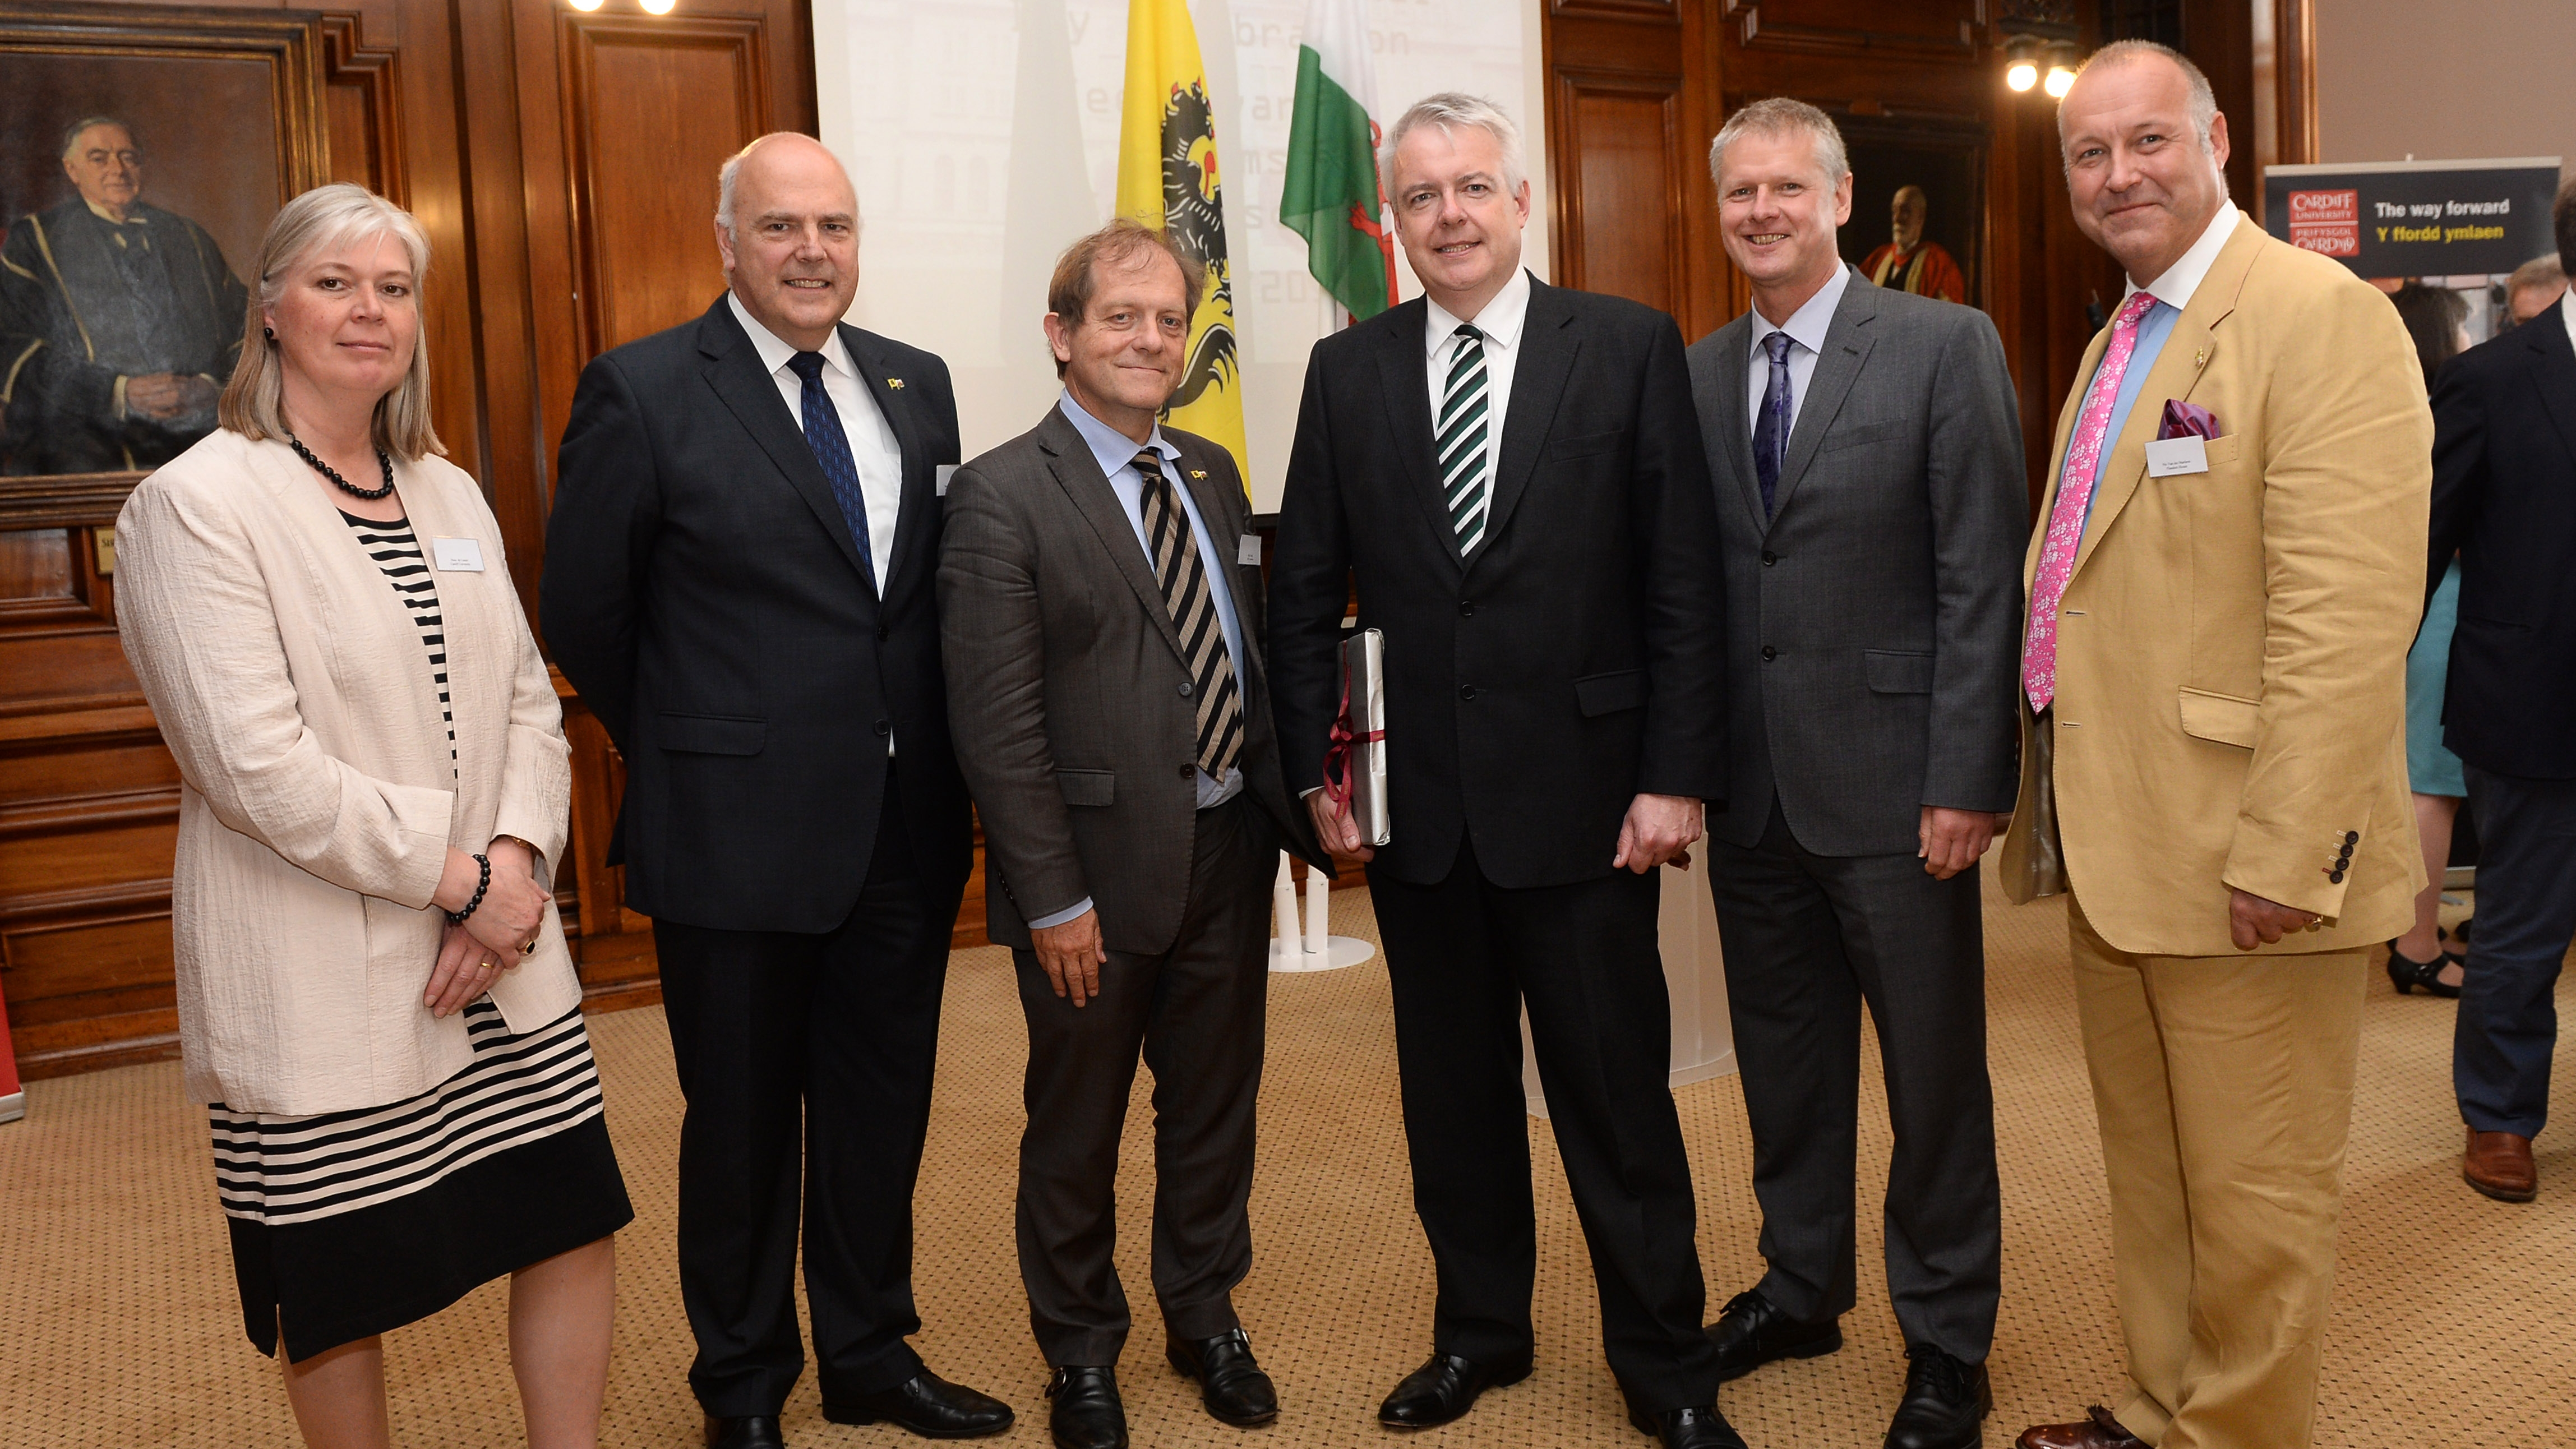 Leuven and Cardiff universities with Welsh First Minister